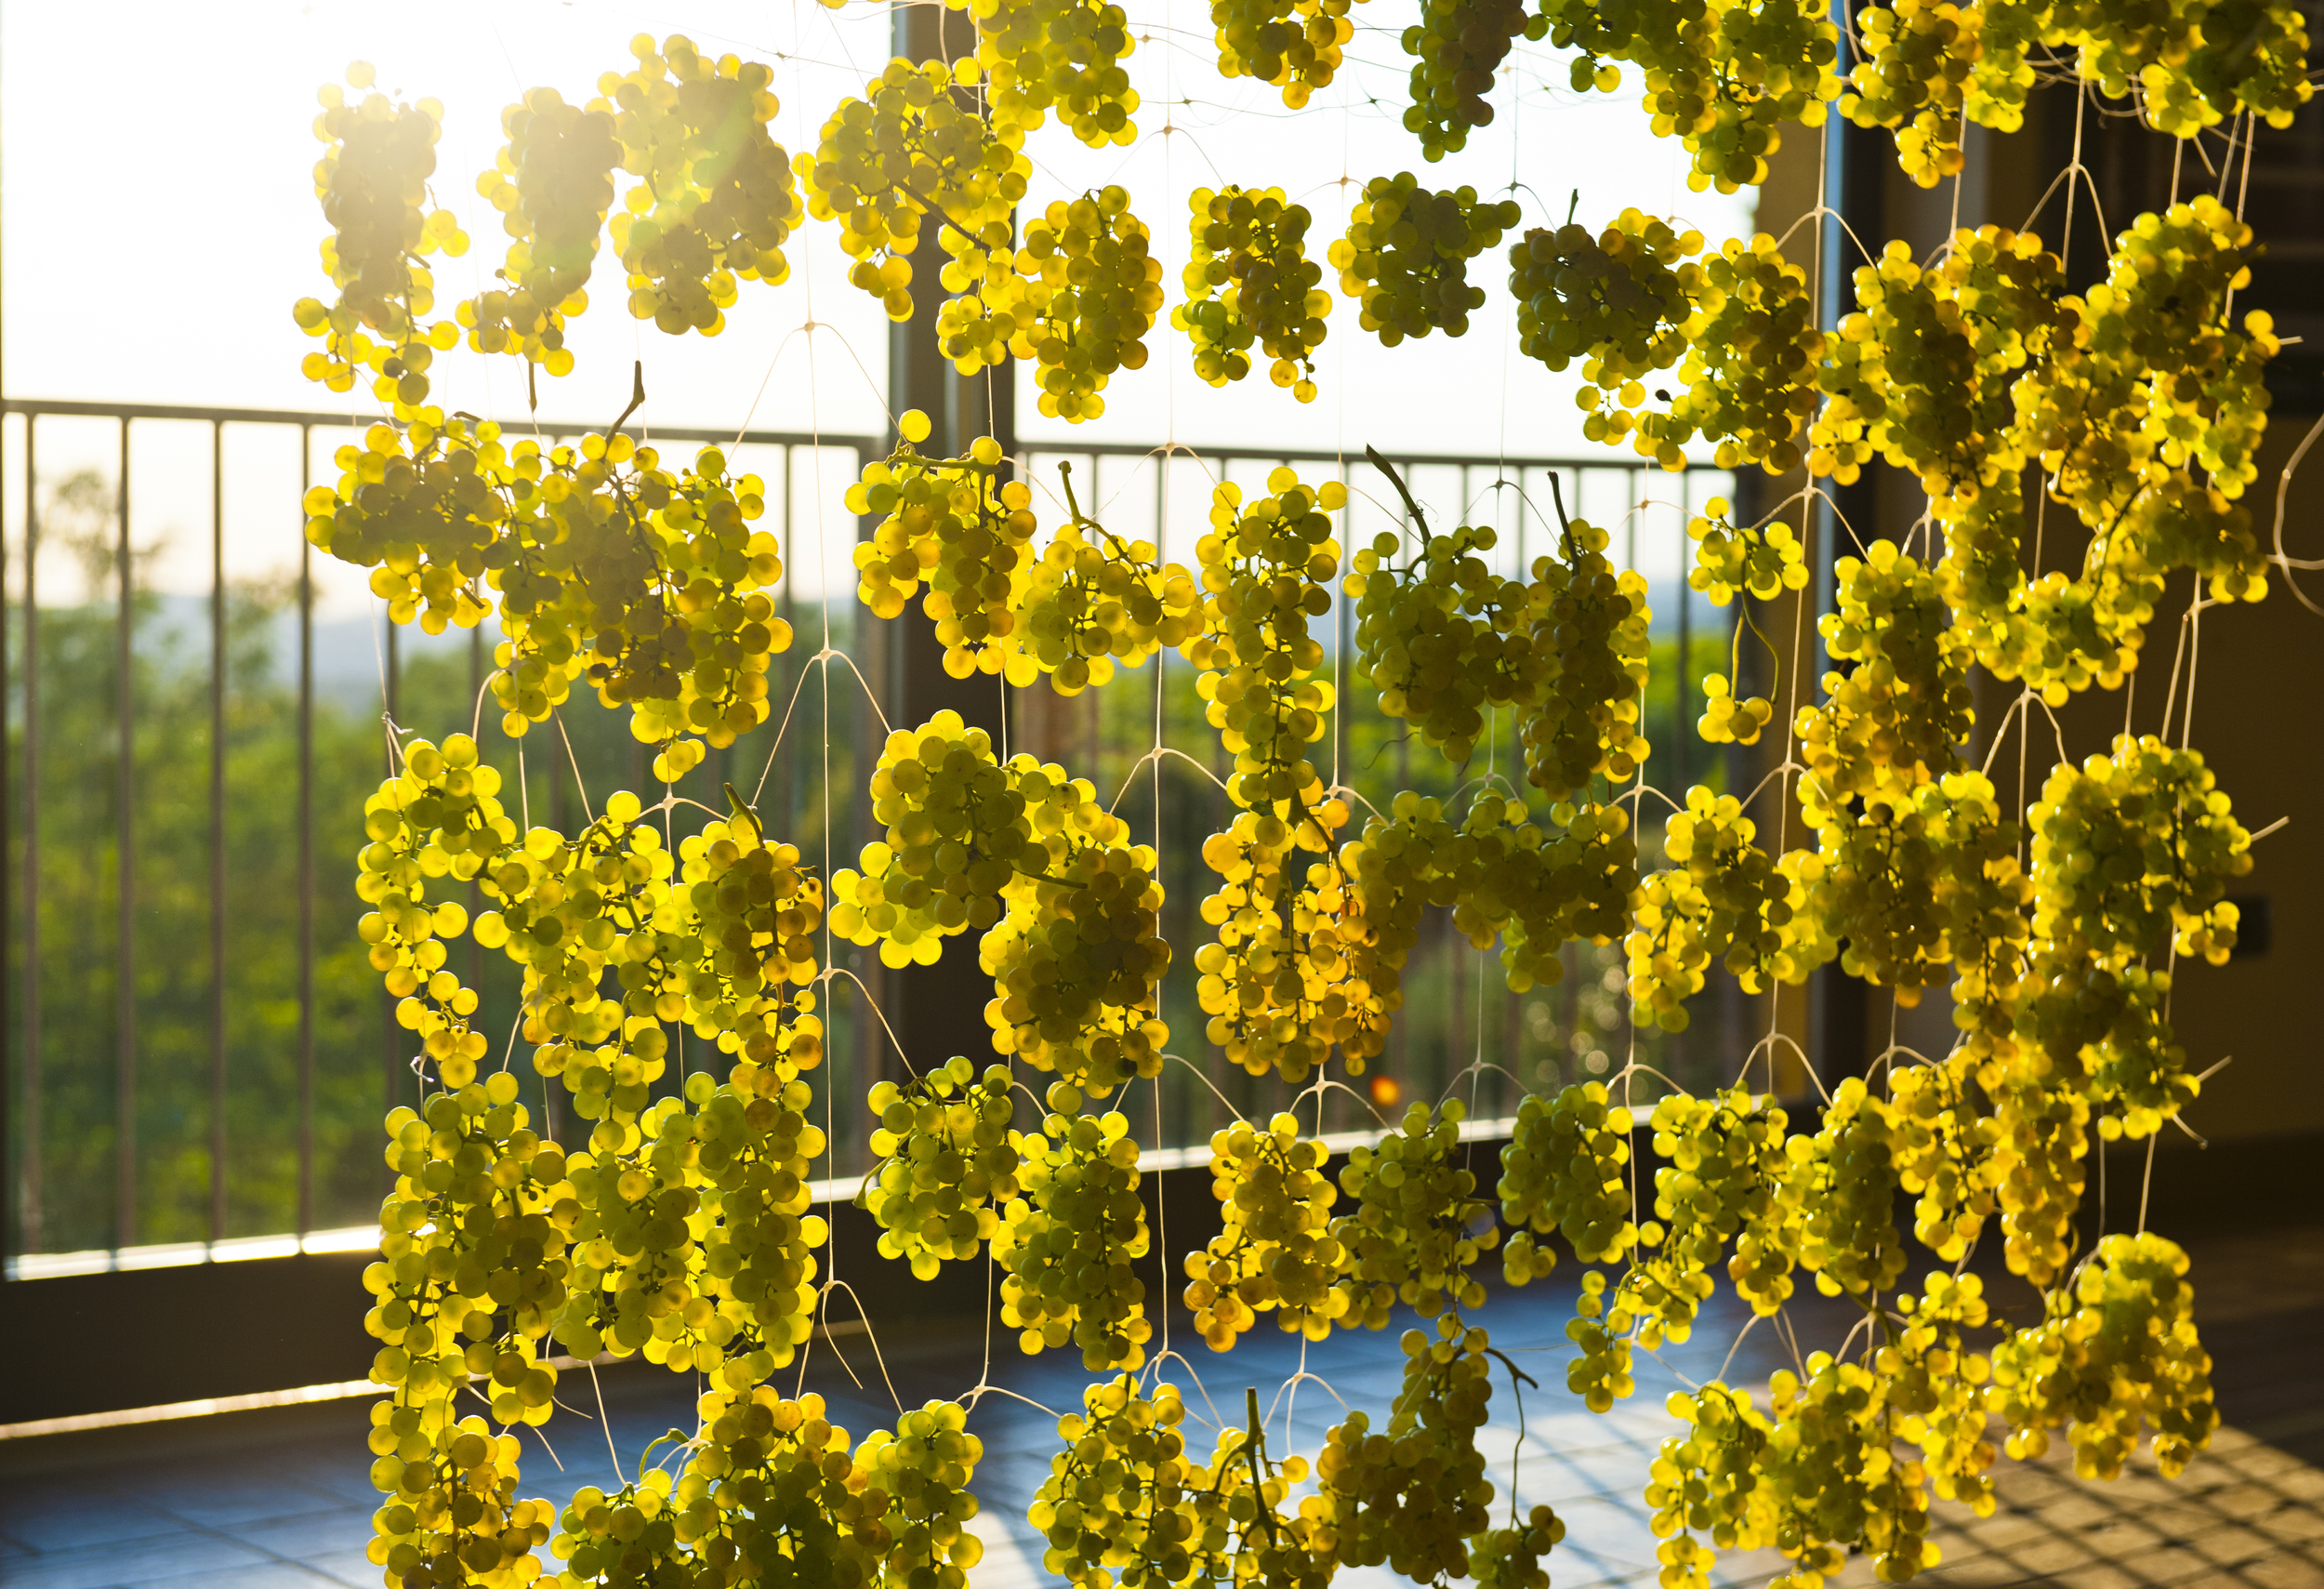 Garganega grapes hanging out to dry